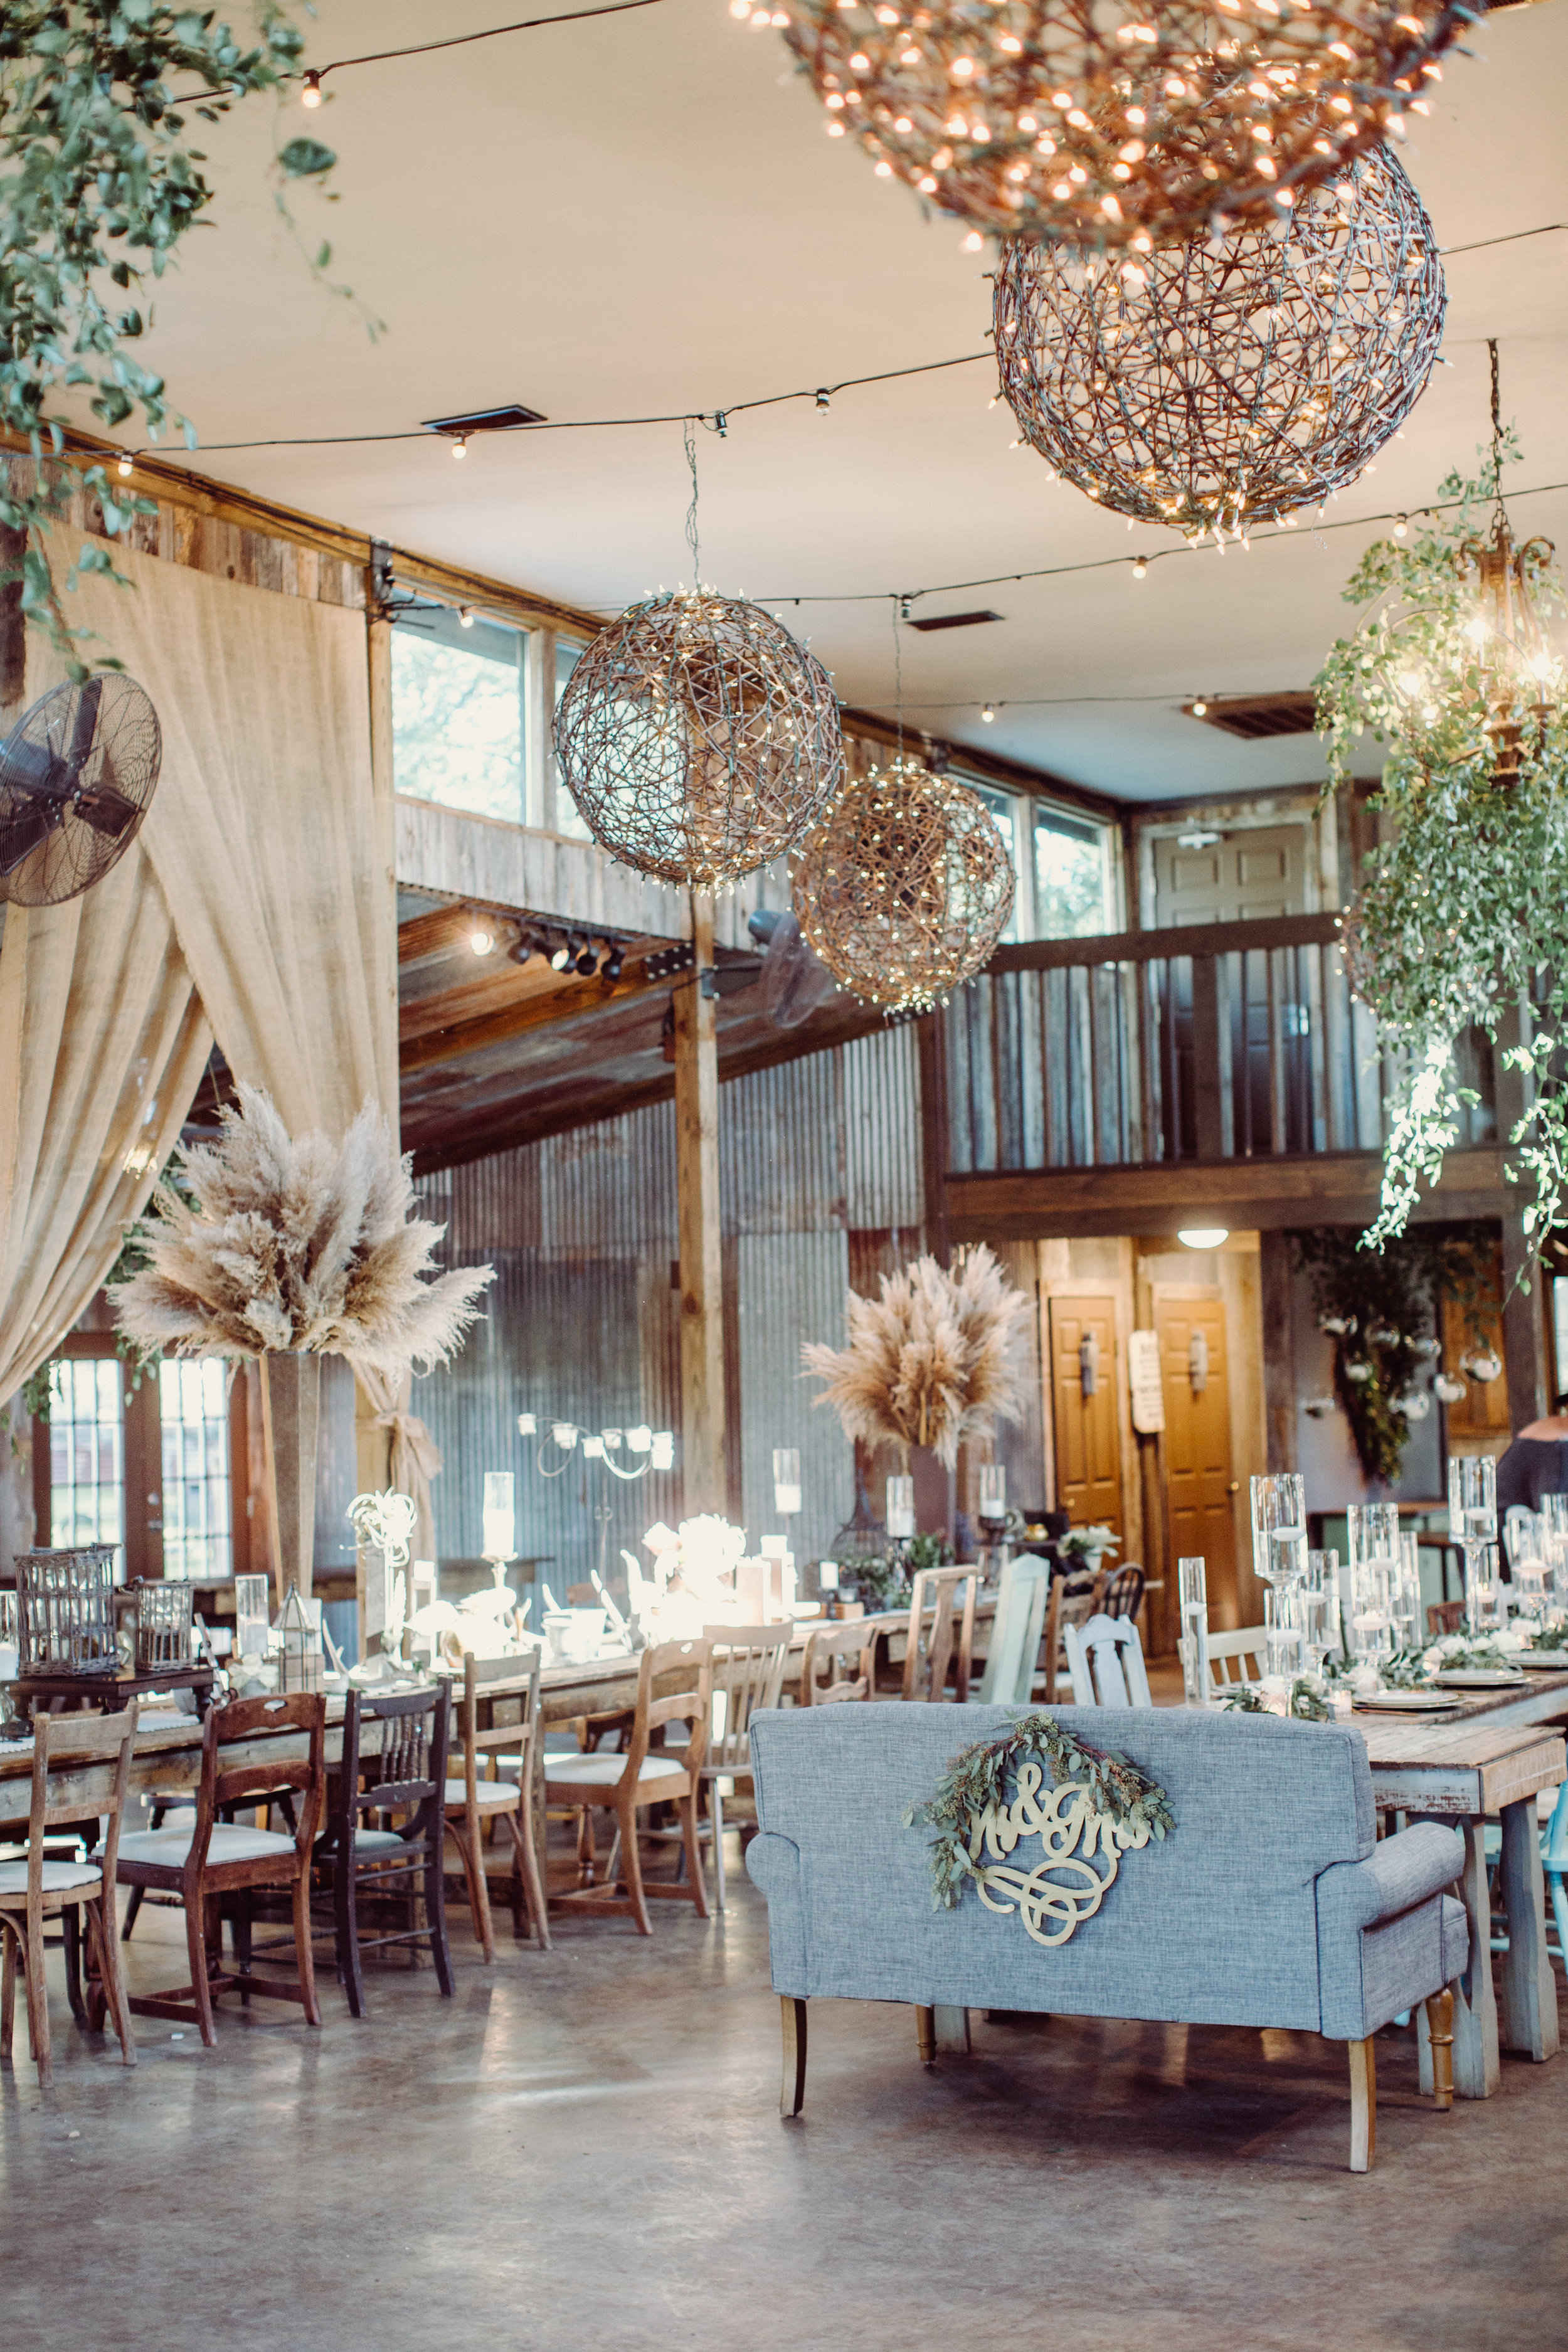 vista-west-ranch-ceremony-reception-barn-texas-hill-country-wedding-venue-with-lodging